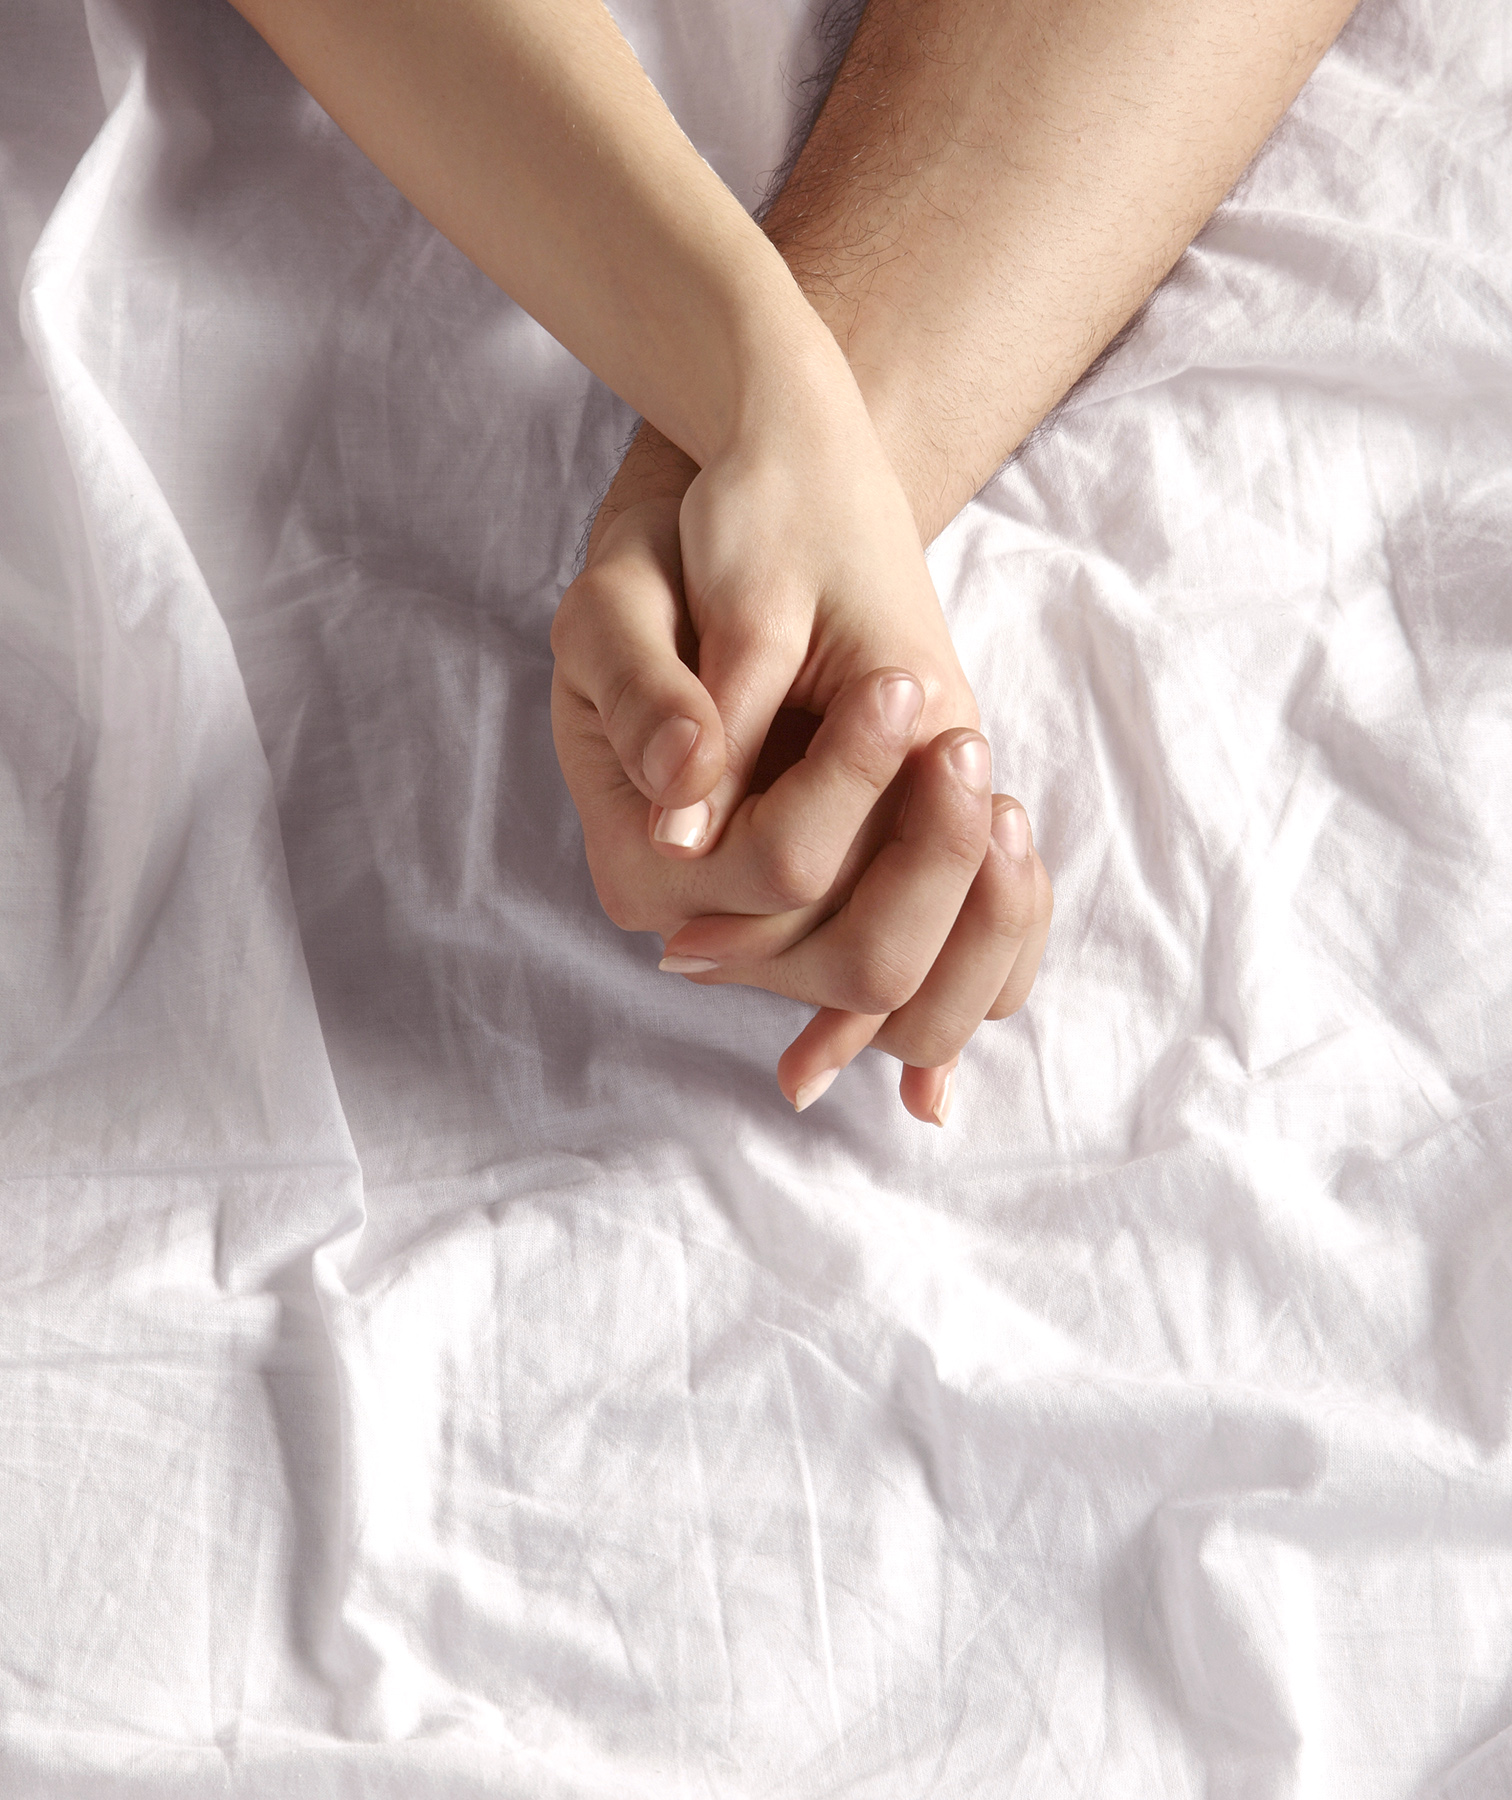 Couple holding hands on sheet